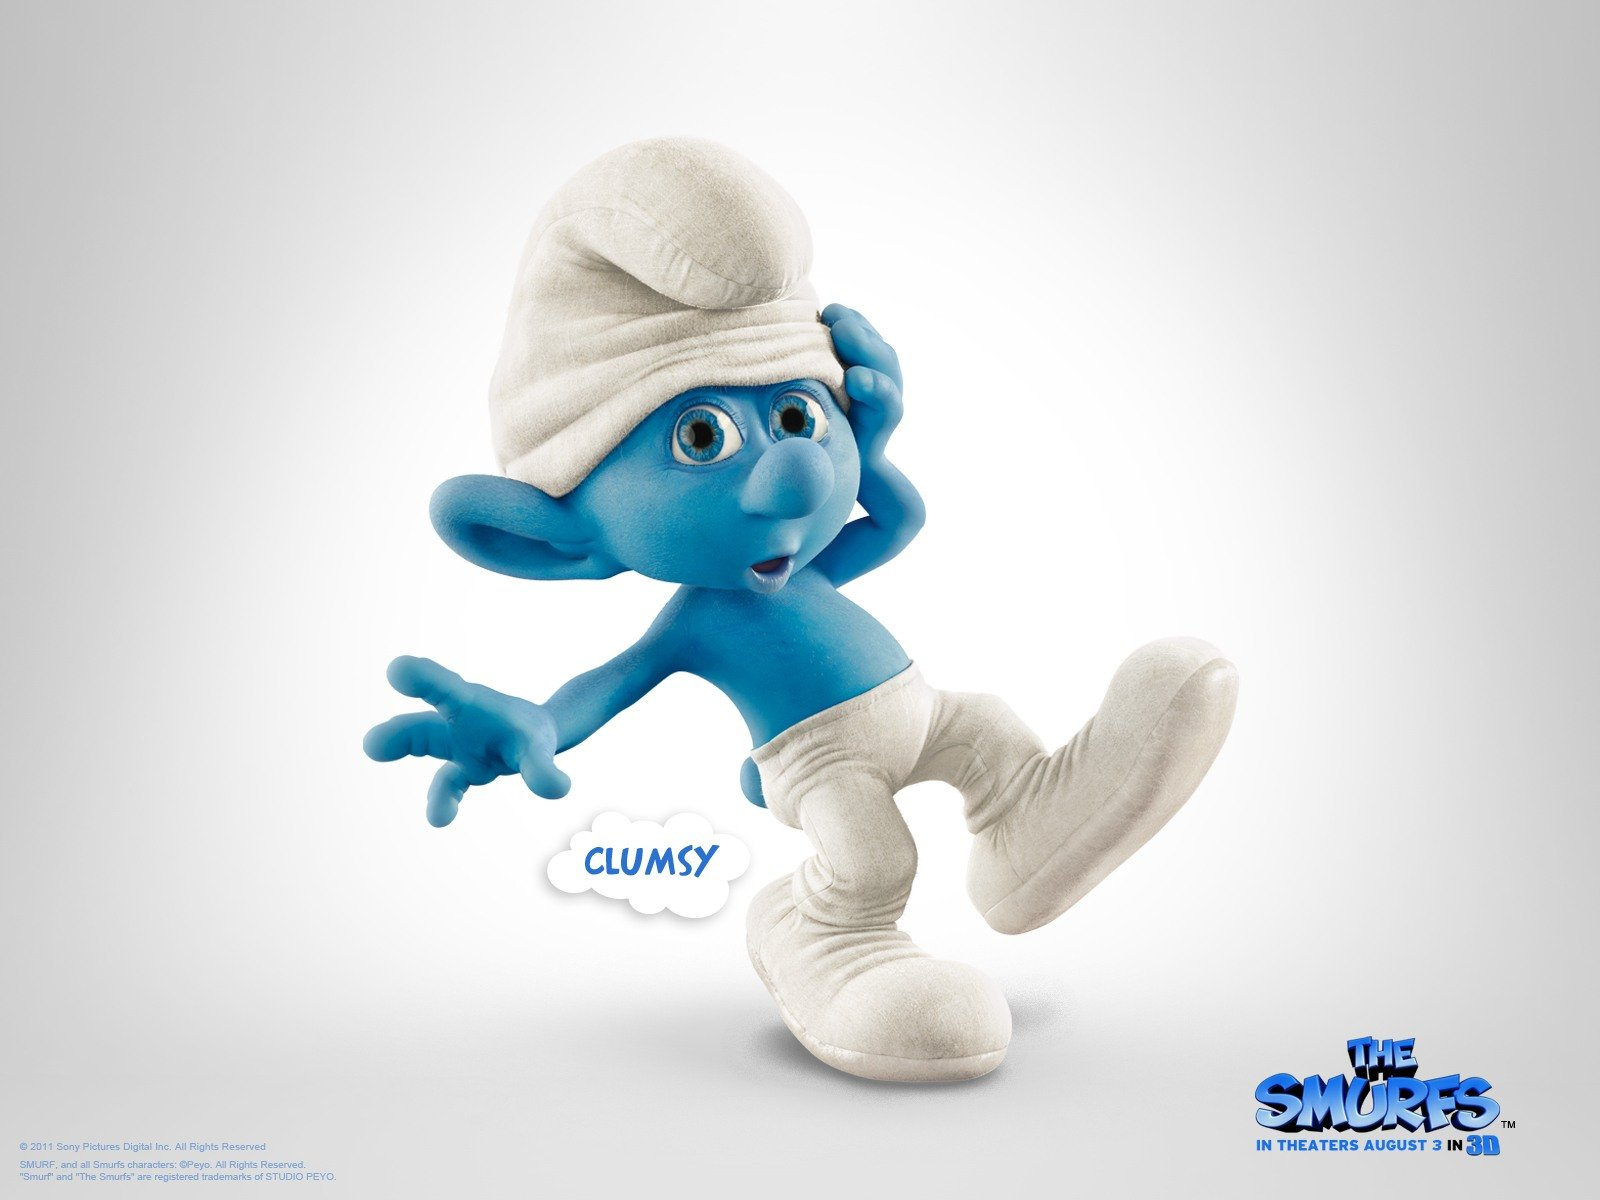 Smurfs Movie 3D HD Poster Wallpapers Download Wallpapers in HD 1600x1200